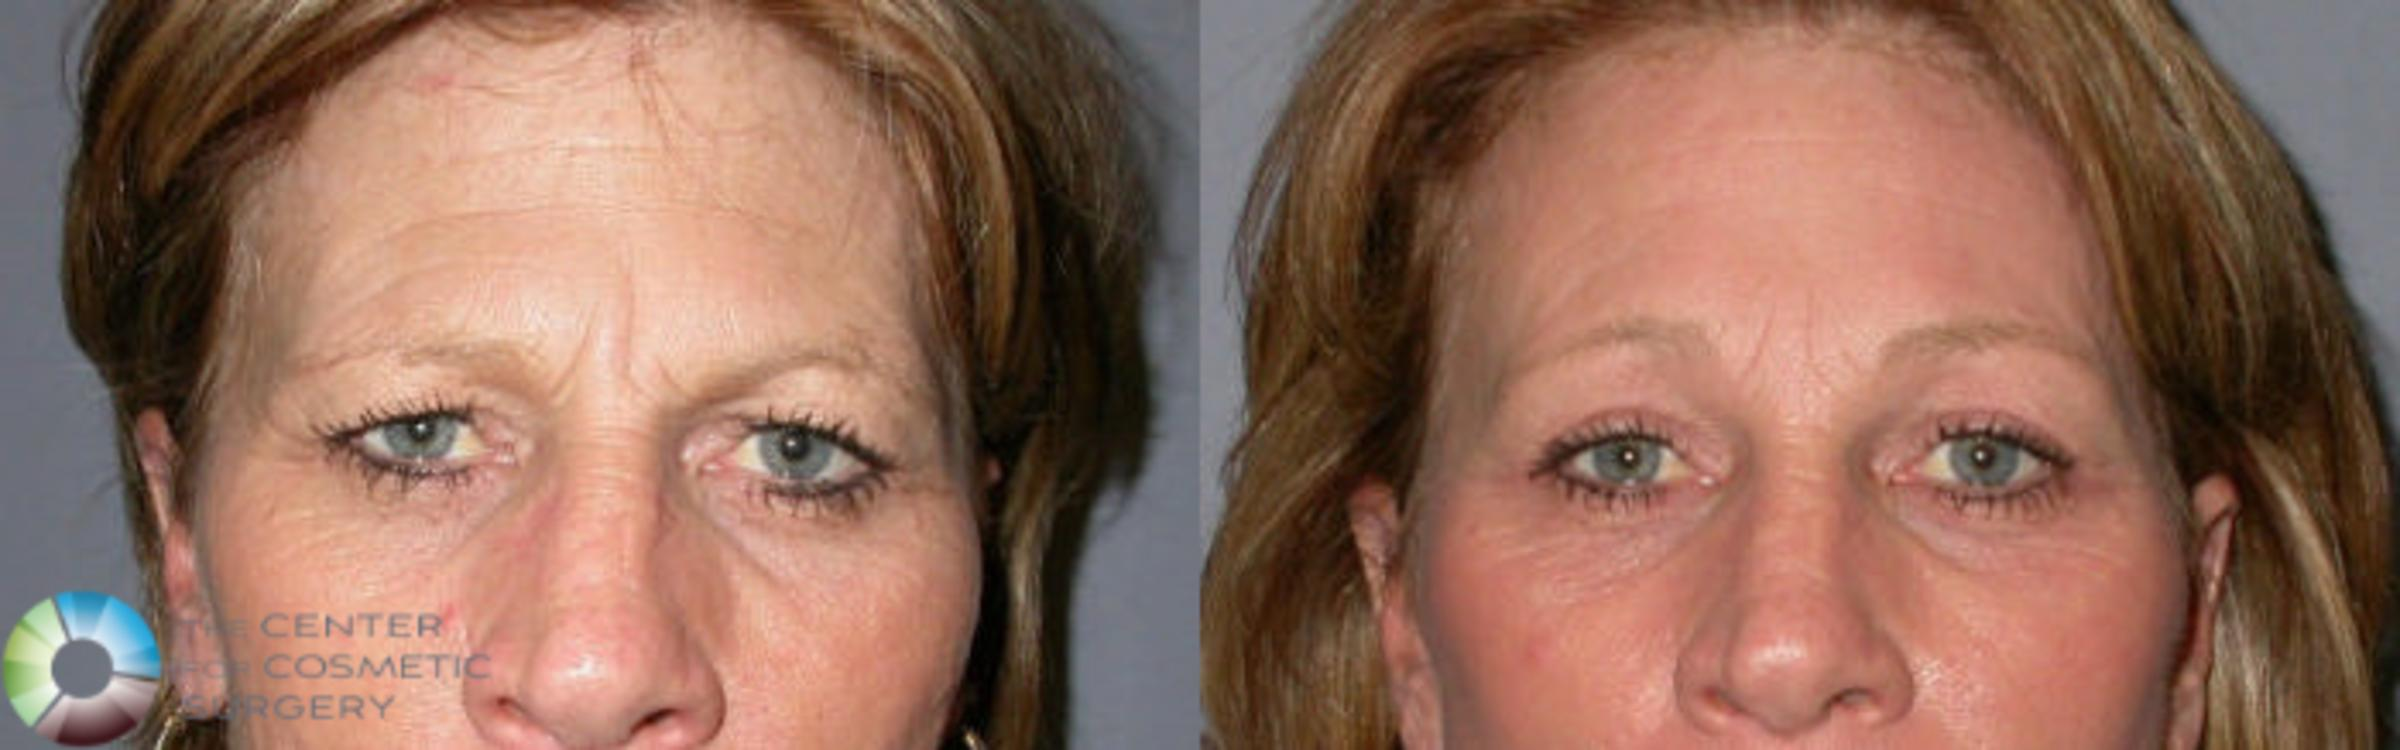 Eyelid Lift Case 66 Before & After View #1 | Golden, CO | The Center for Cosmetic Surgery